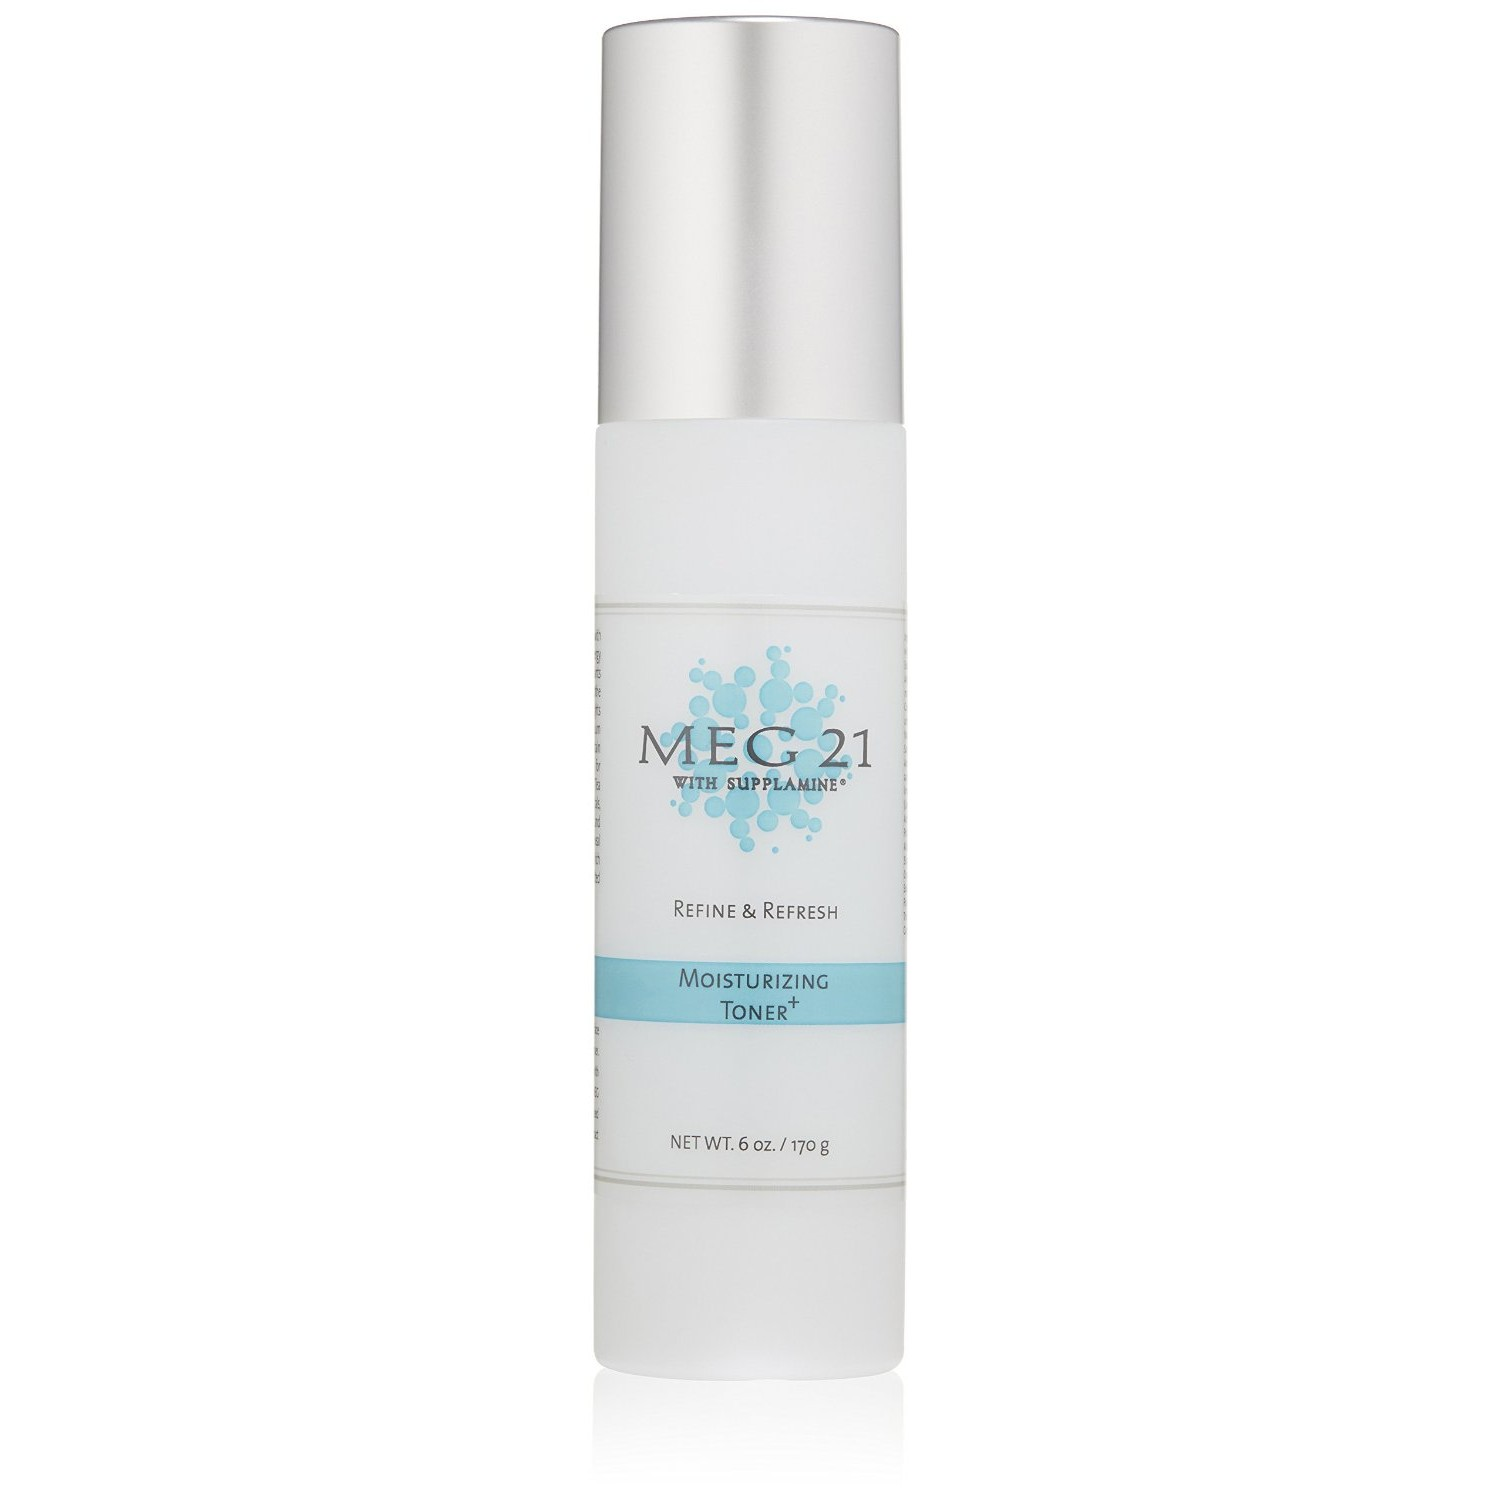 MEG 21 REFINE & REFRESH MOISTURIZING TONER+ (6.0 oz / 170 g)